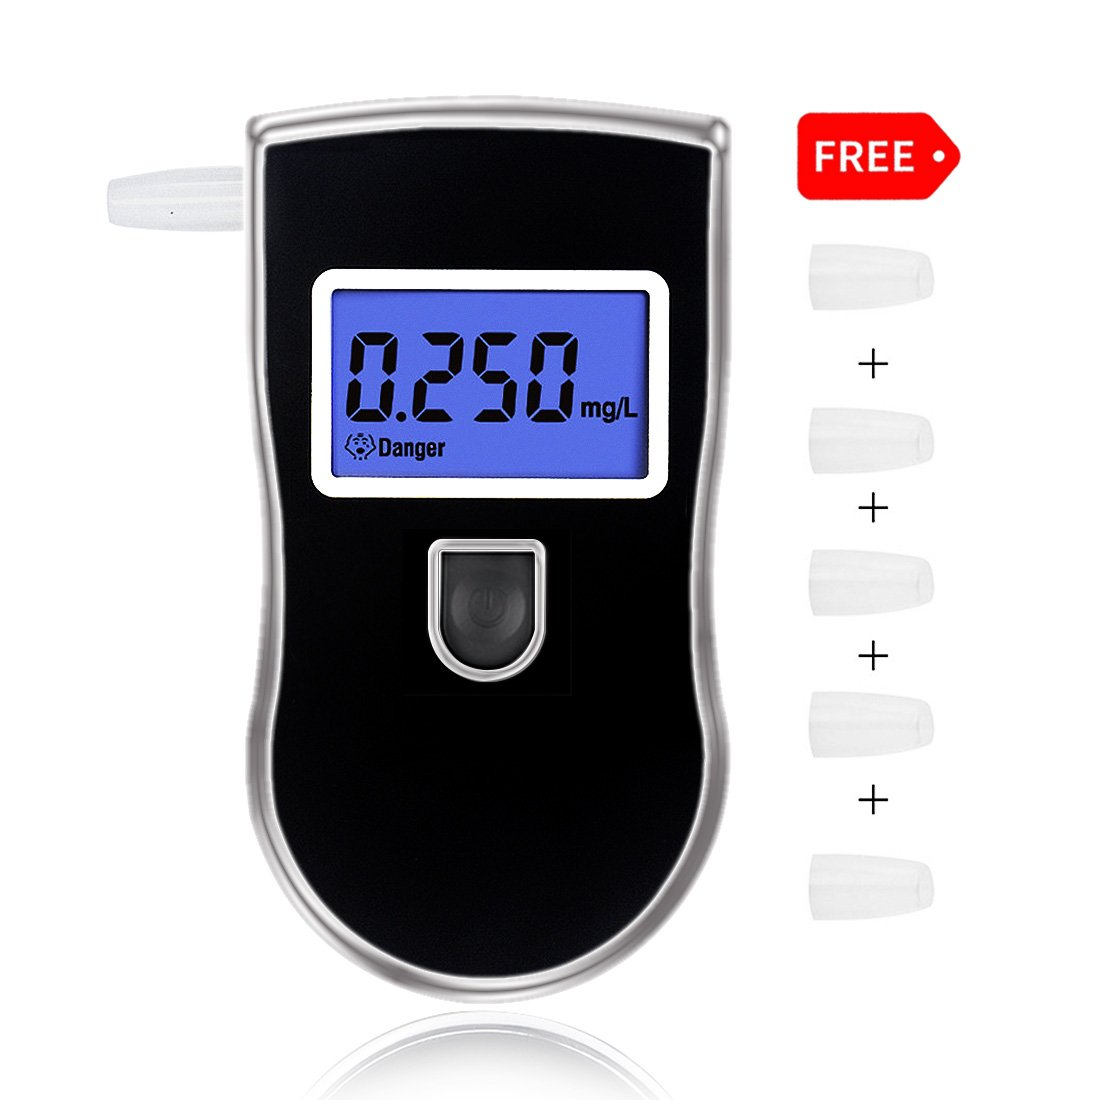 Breathalyzer, Portable Professional Digital Alcohol Tester Detector with Portable Bag for Home Use